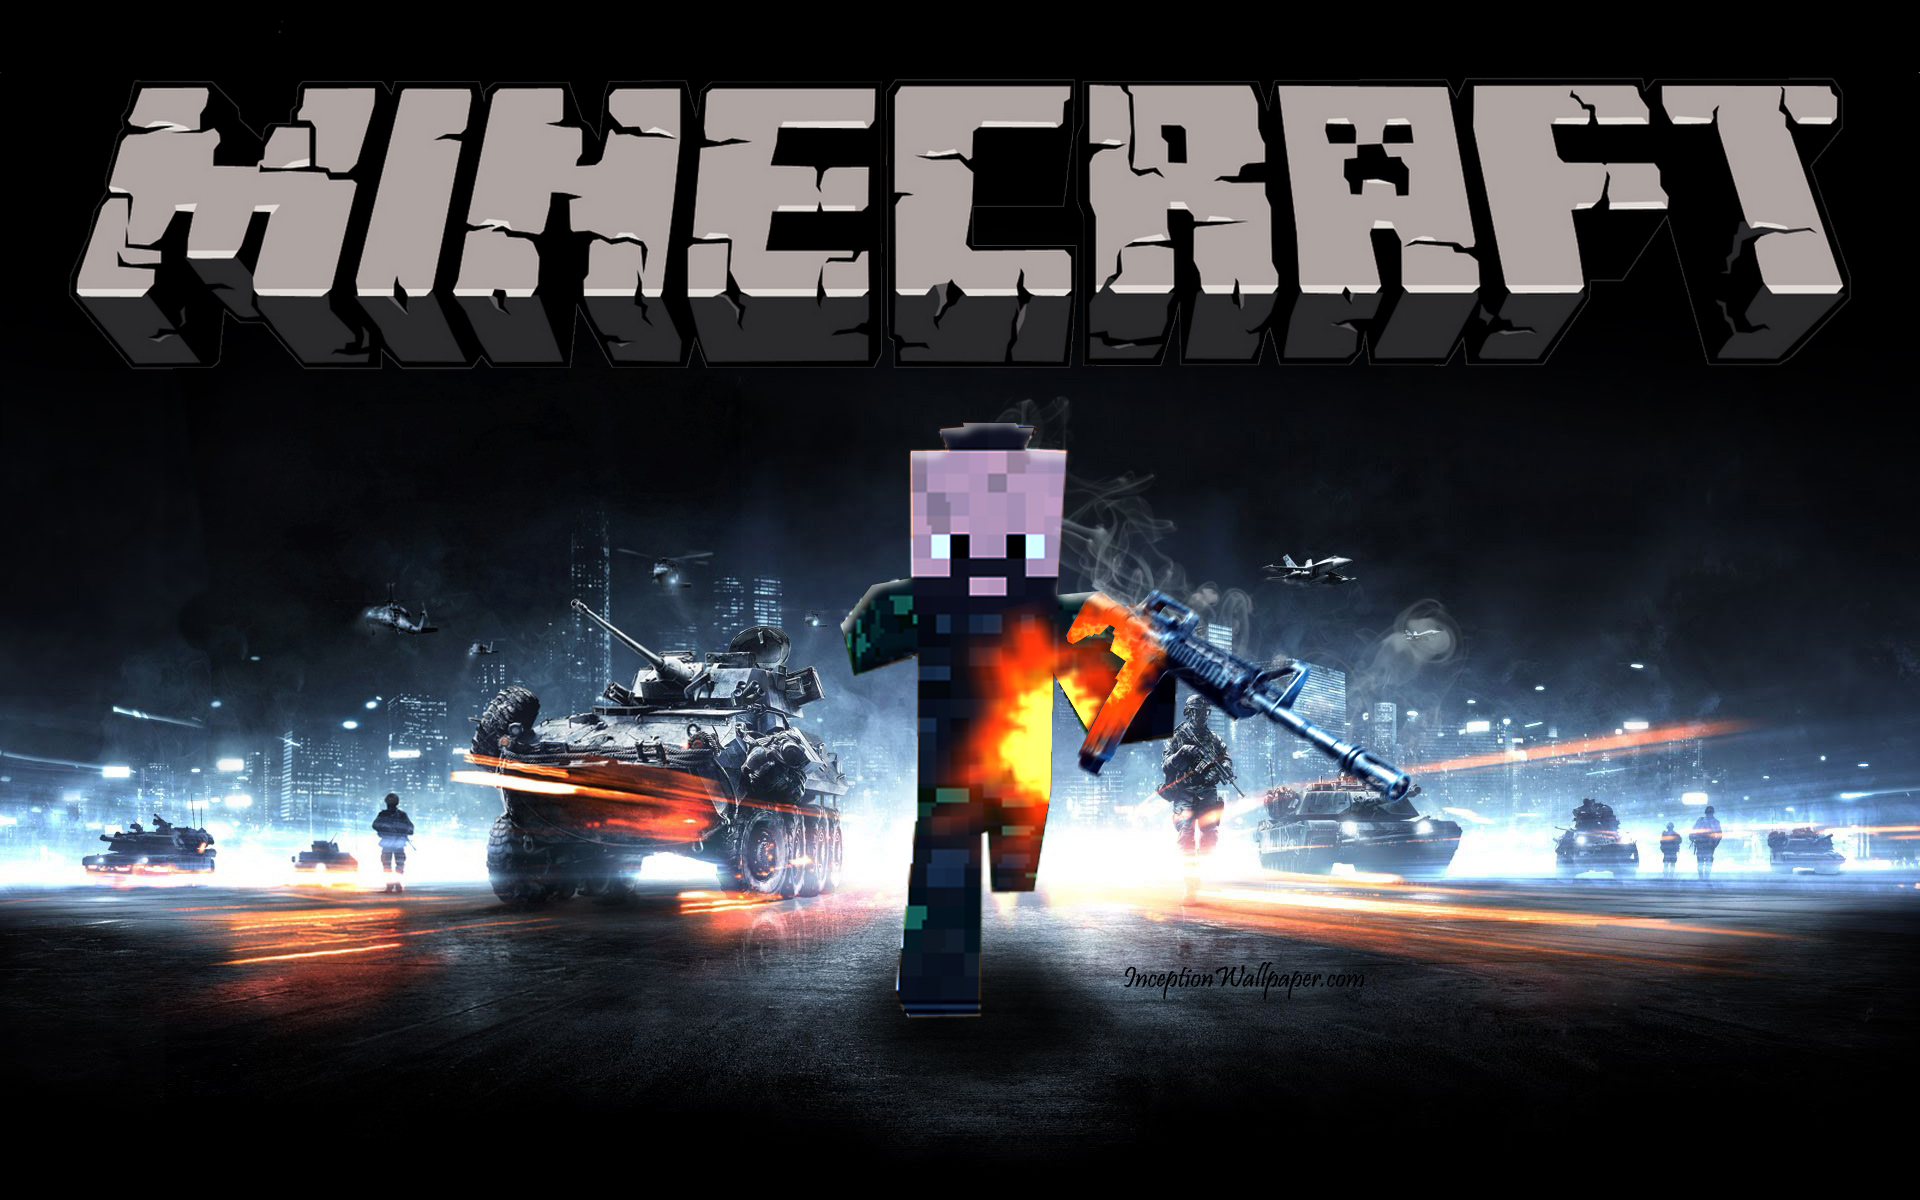 Minecraft 13 2 wallpaper 167467 1920x1200